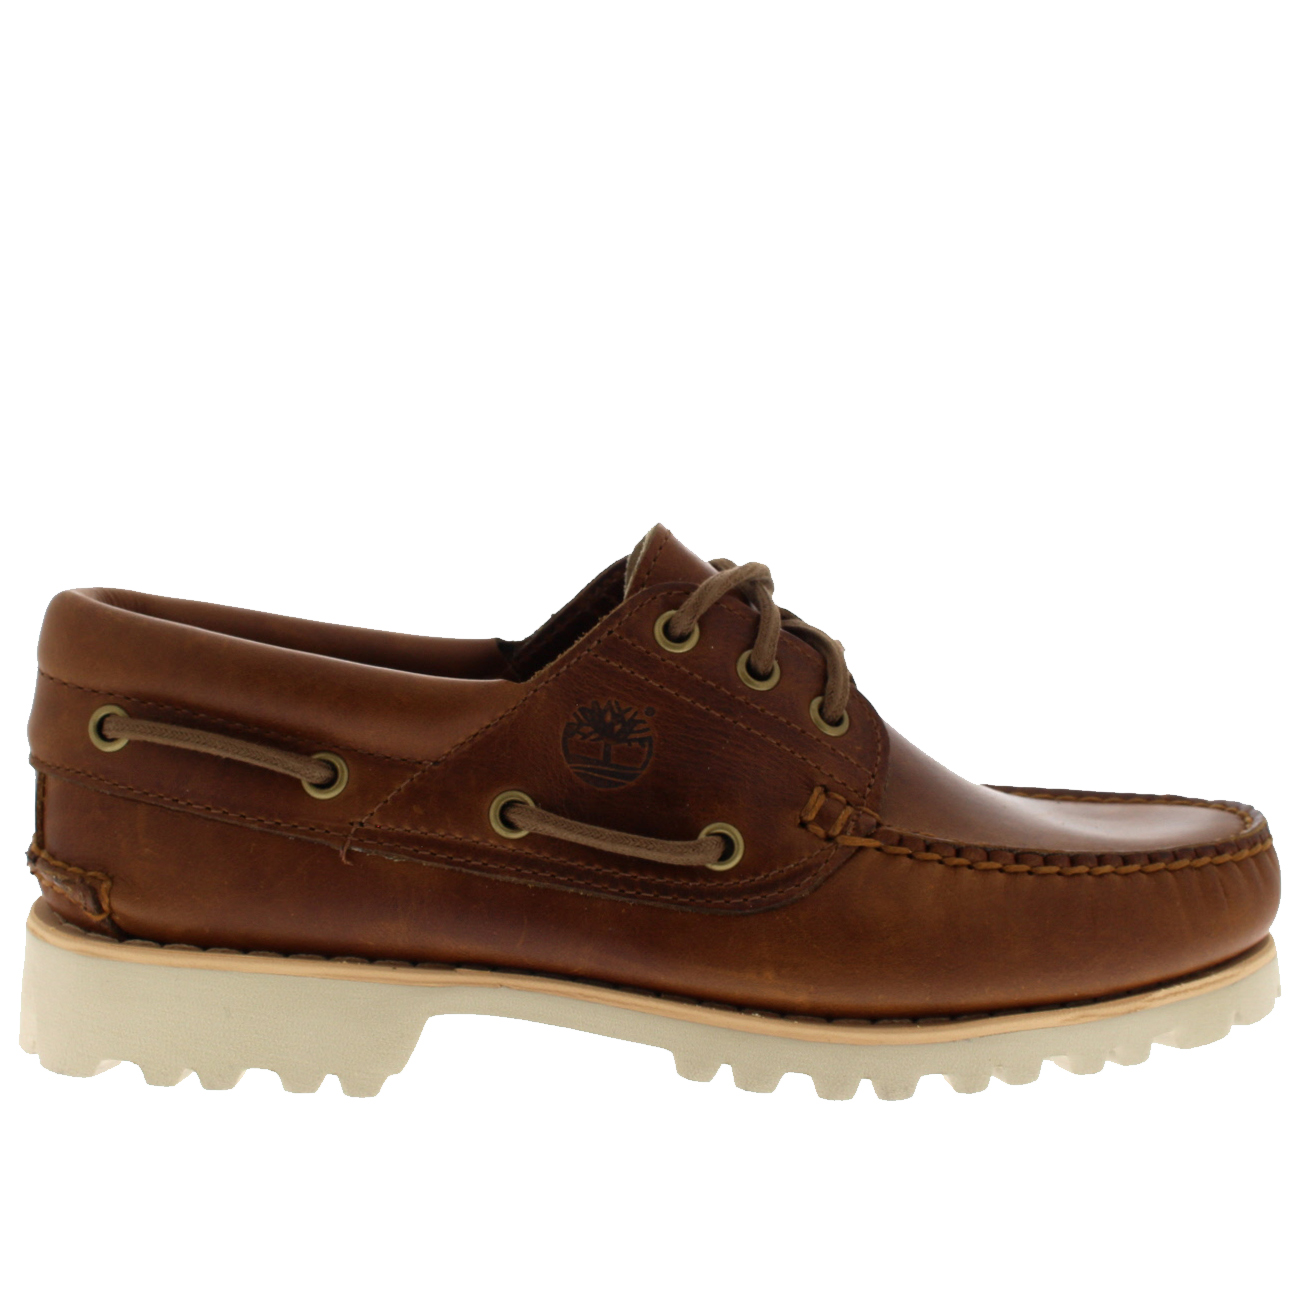 2302bd33d7d7c Mens Timberland Chilmark 3 Eye Hand Work Summer Loafers Deck Boat Shoe All  Sizes